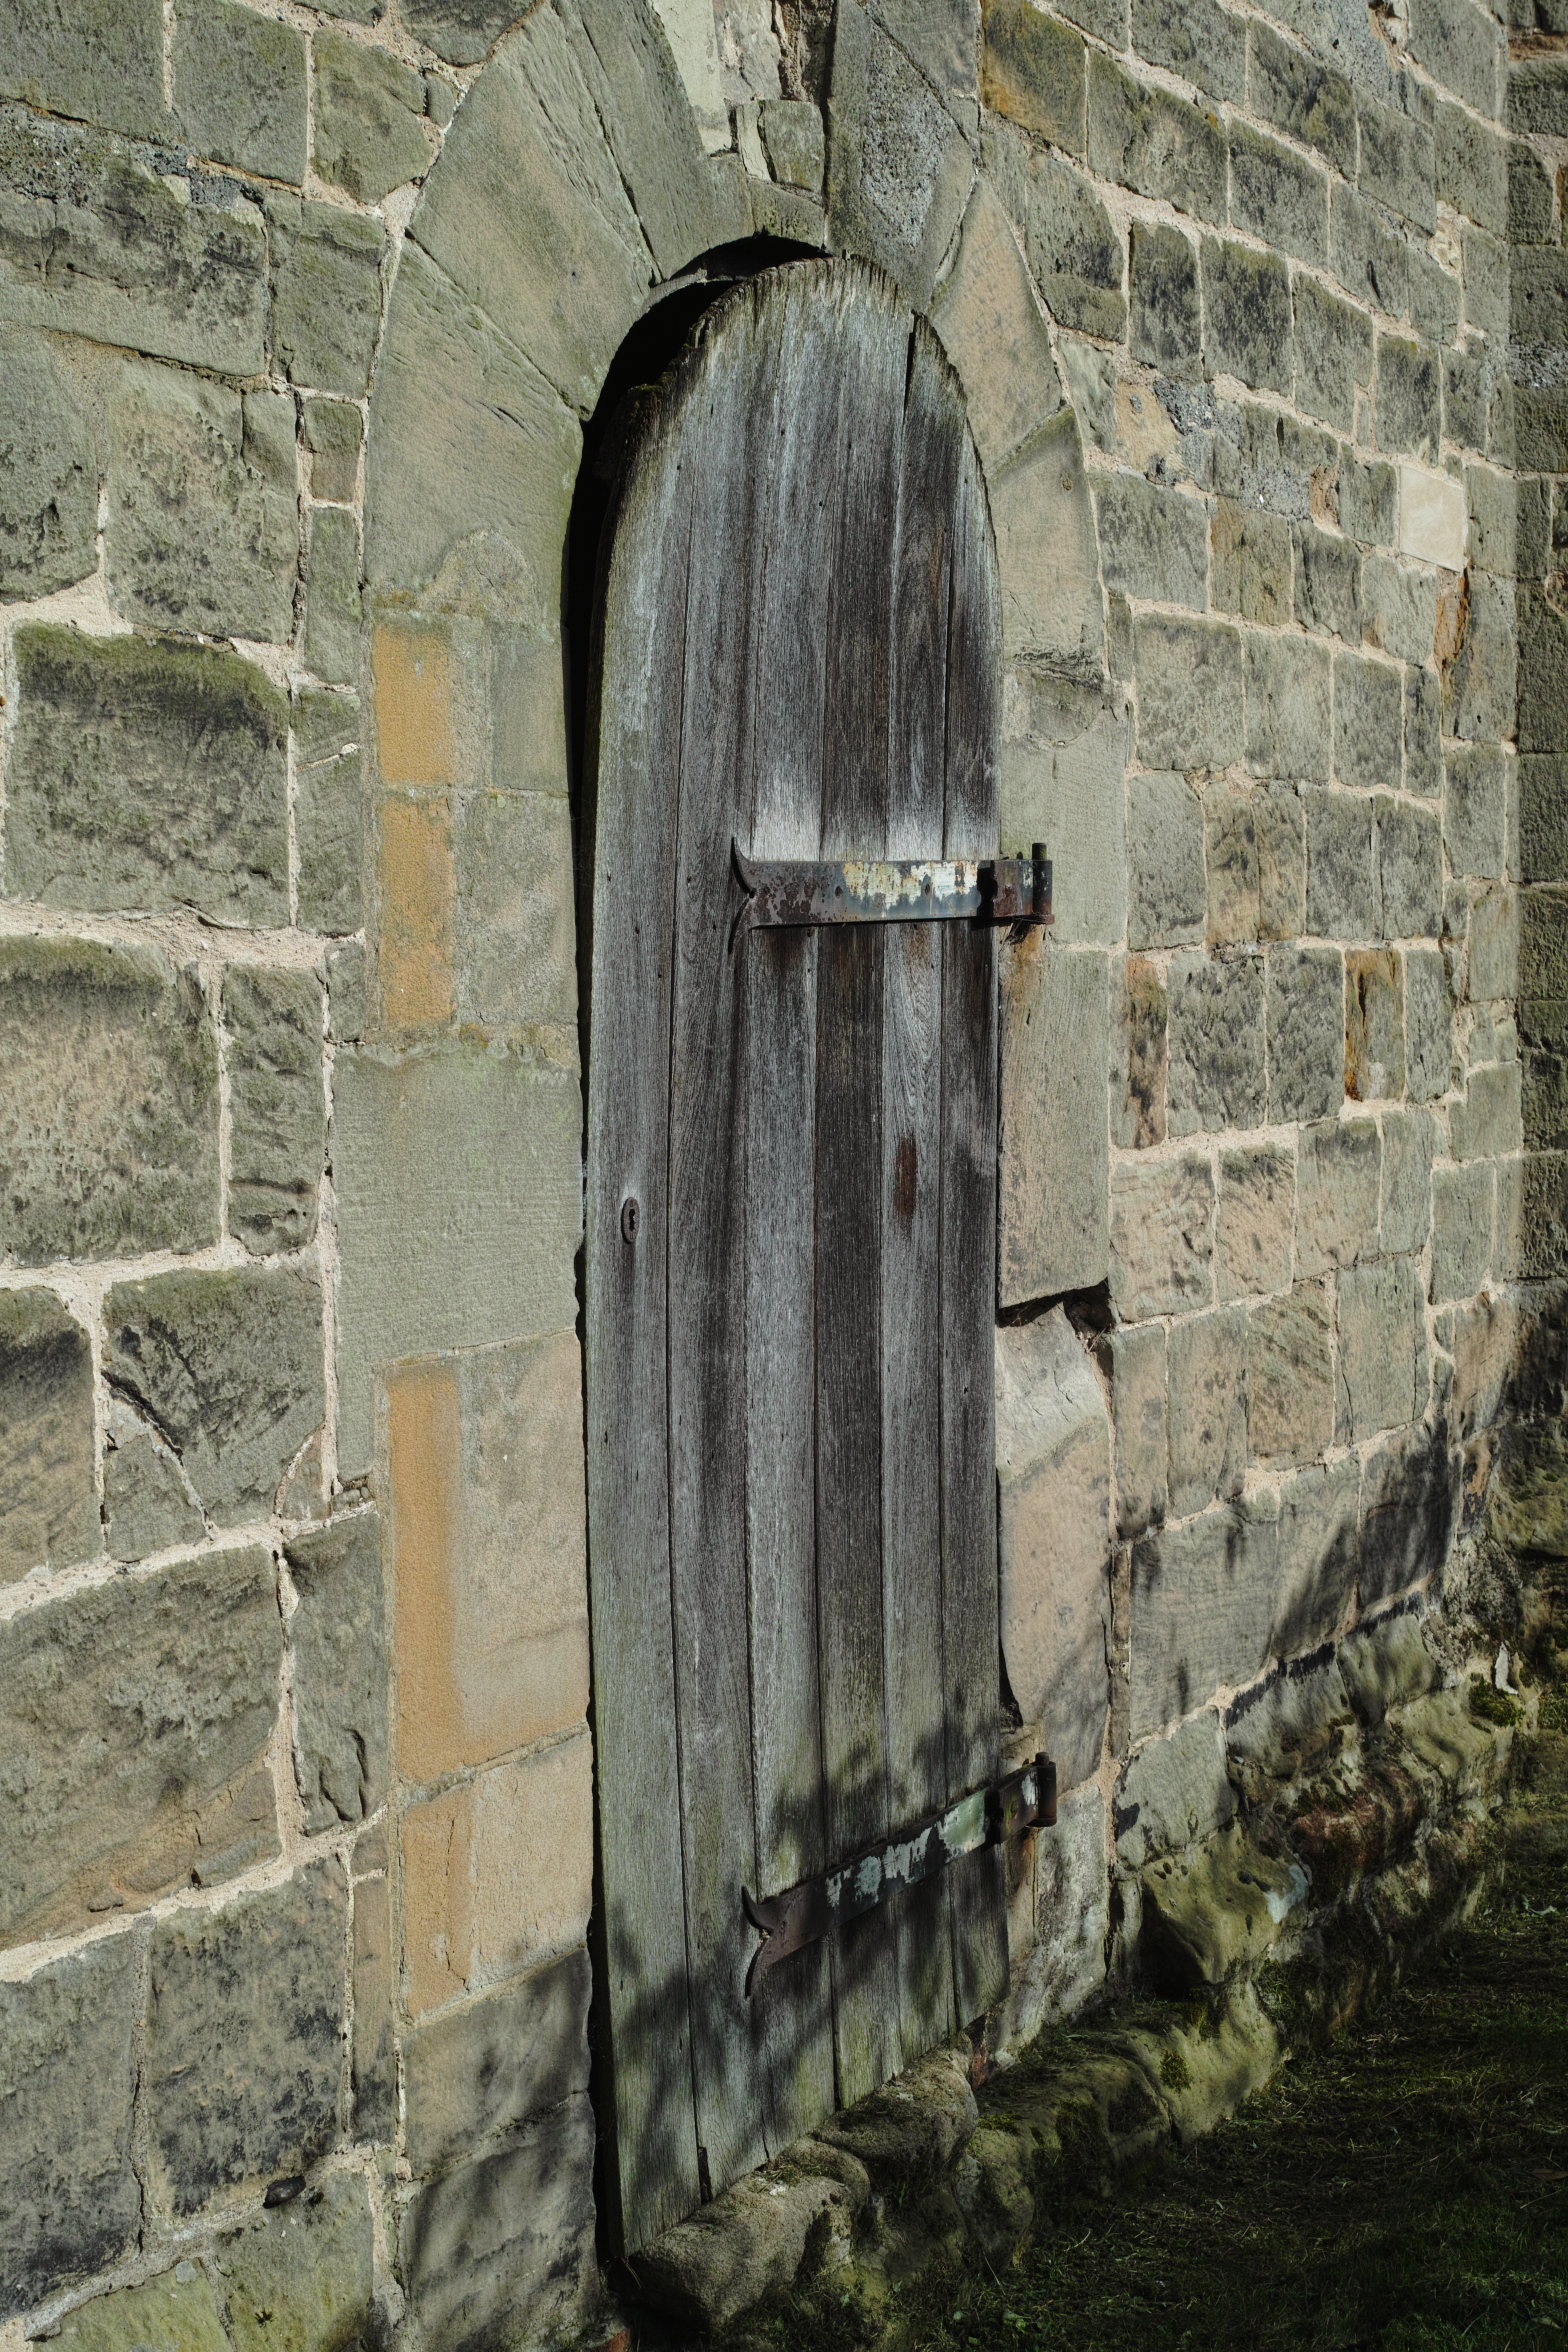 Sigma DP2 Merrill - A Church door. 50% size JPEG from SPP. 1/320s @ f7.1 ISO100